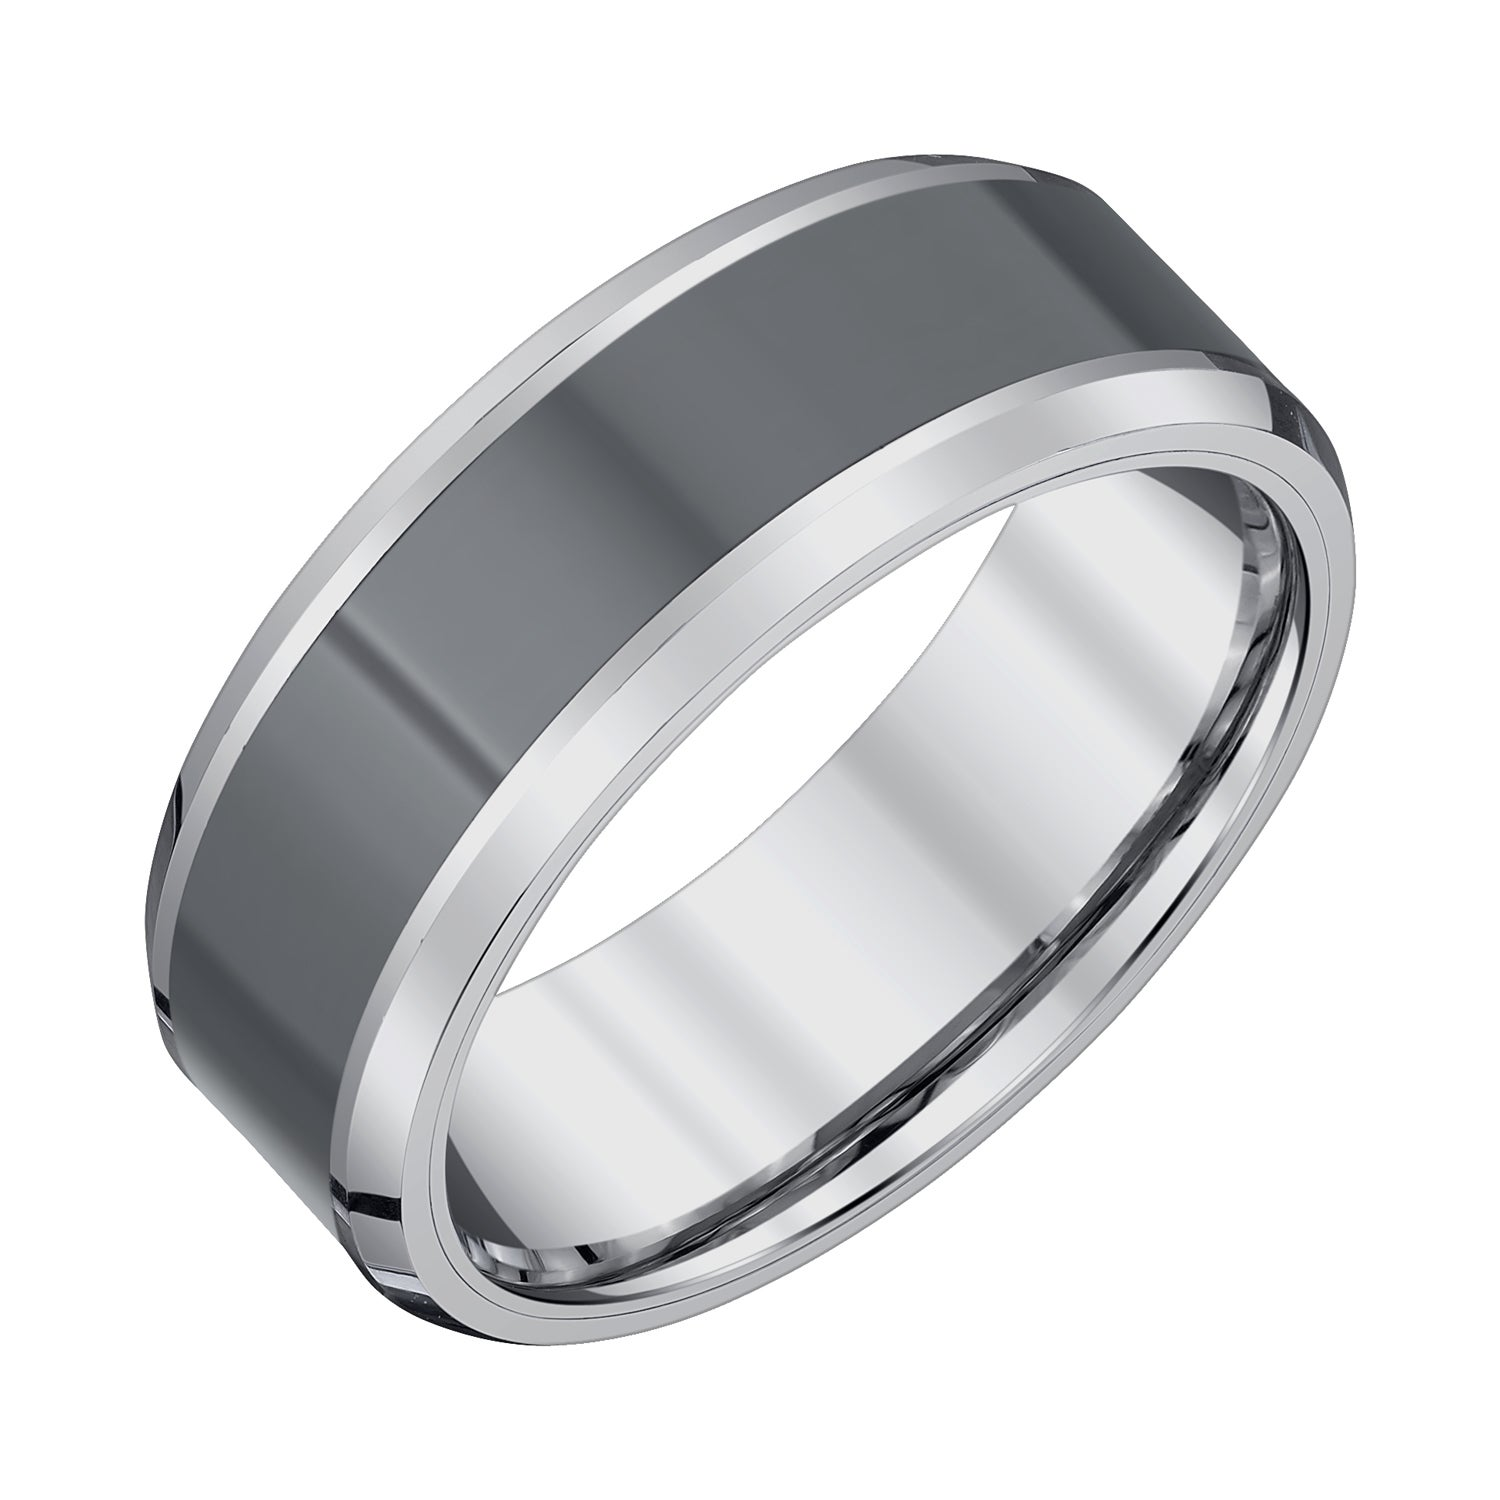 TITANIUM Plain Women/'s Fashion Ring with Black Accent Band NEW in Box size 8